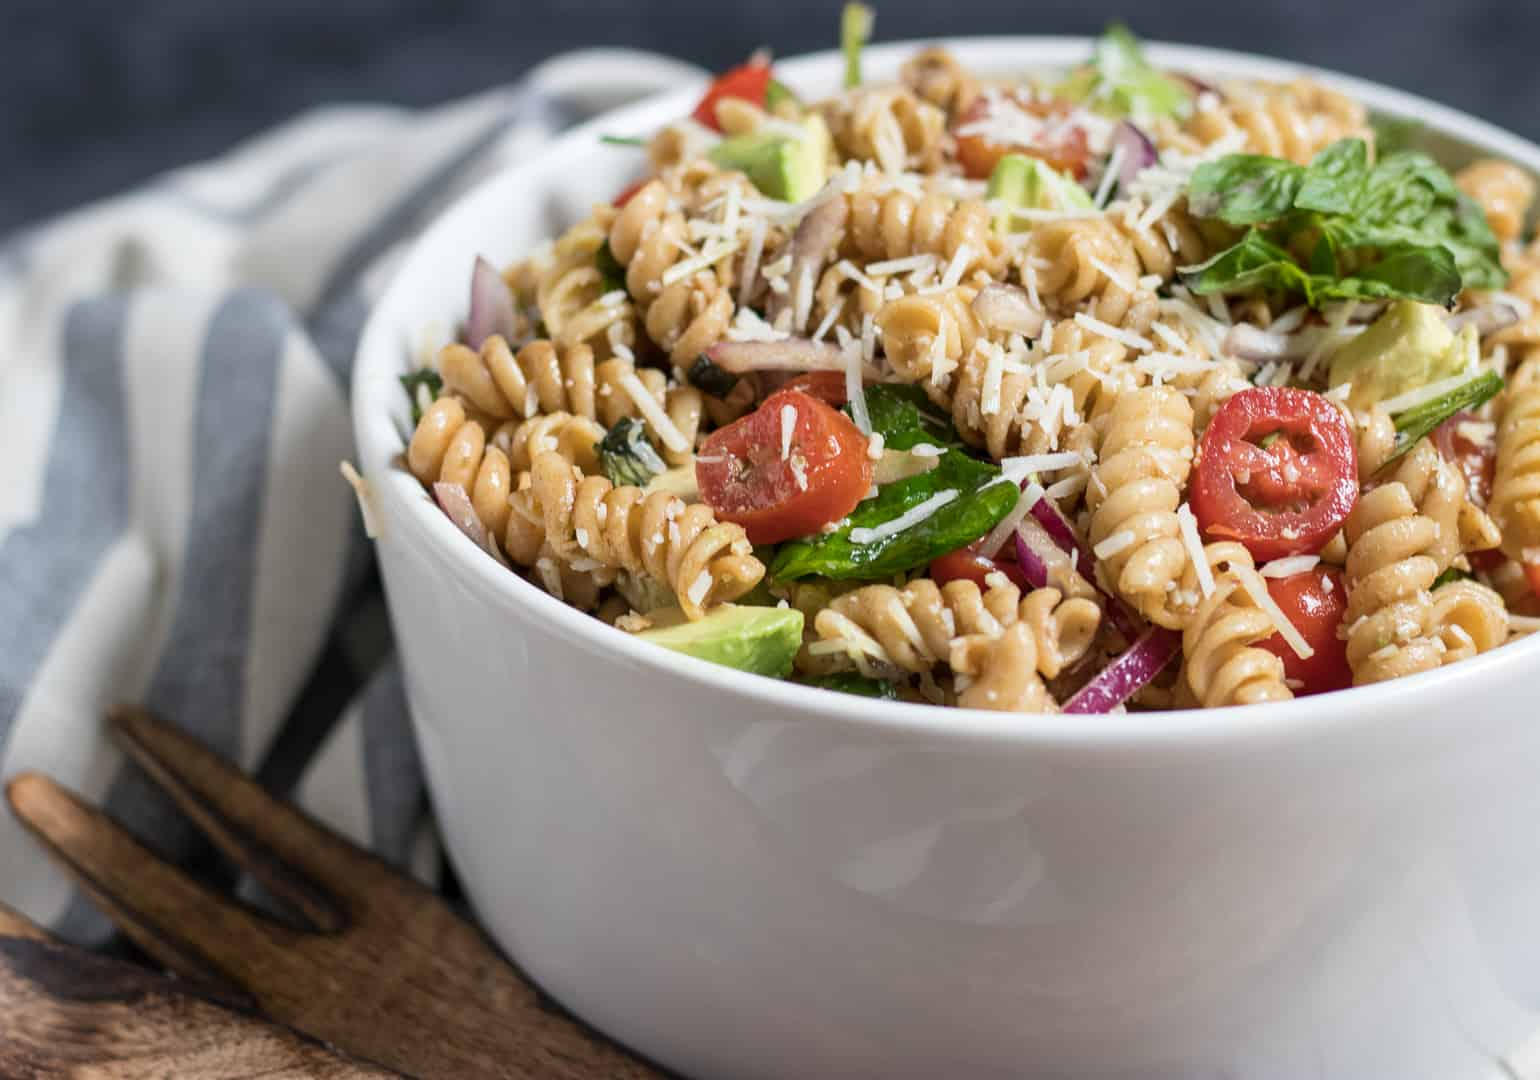 Tomato Basil Pasta Salad in white bowl